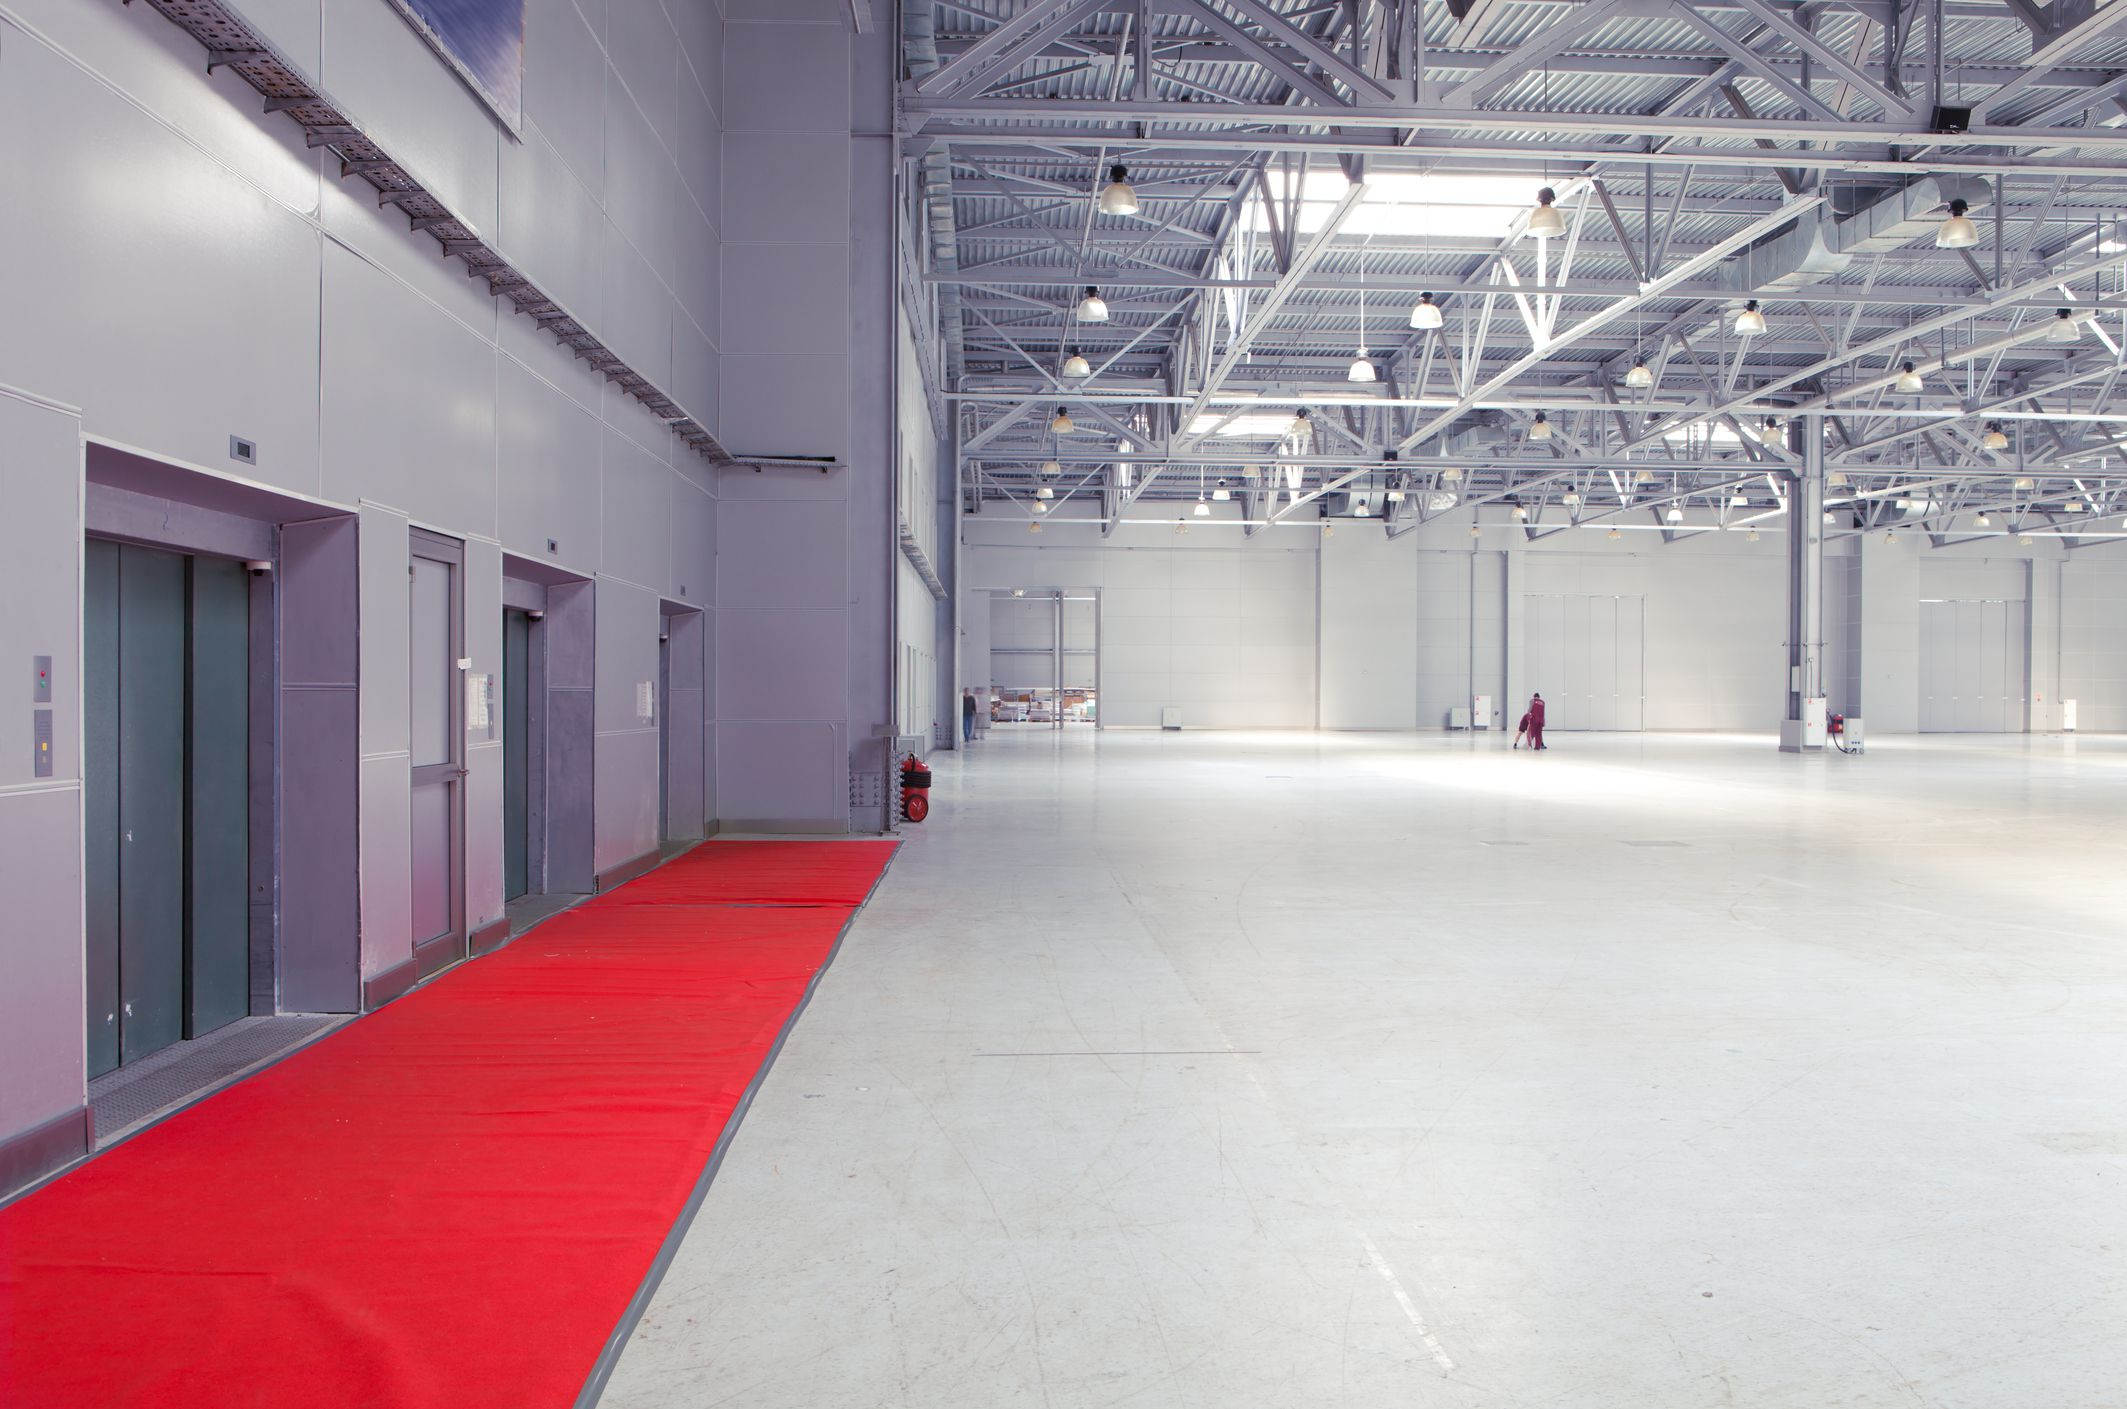 Paint Platoon USA Specializes In Painting Warehouse Interior Ceilings And Floors